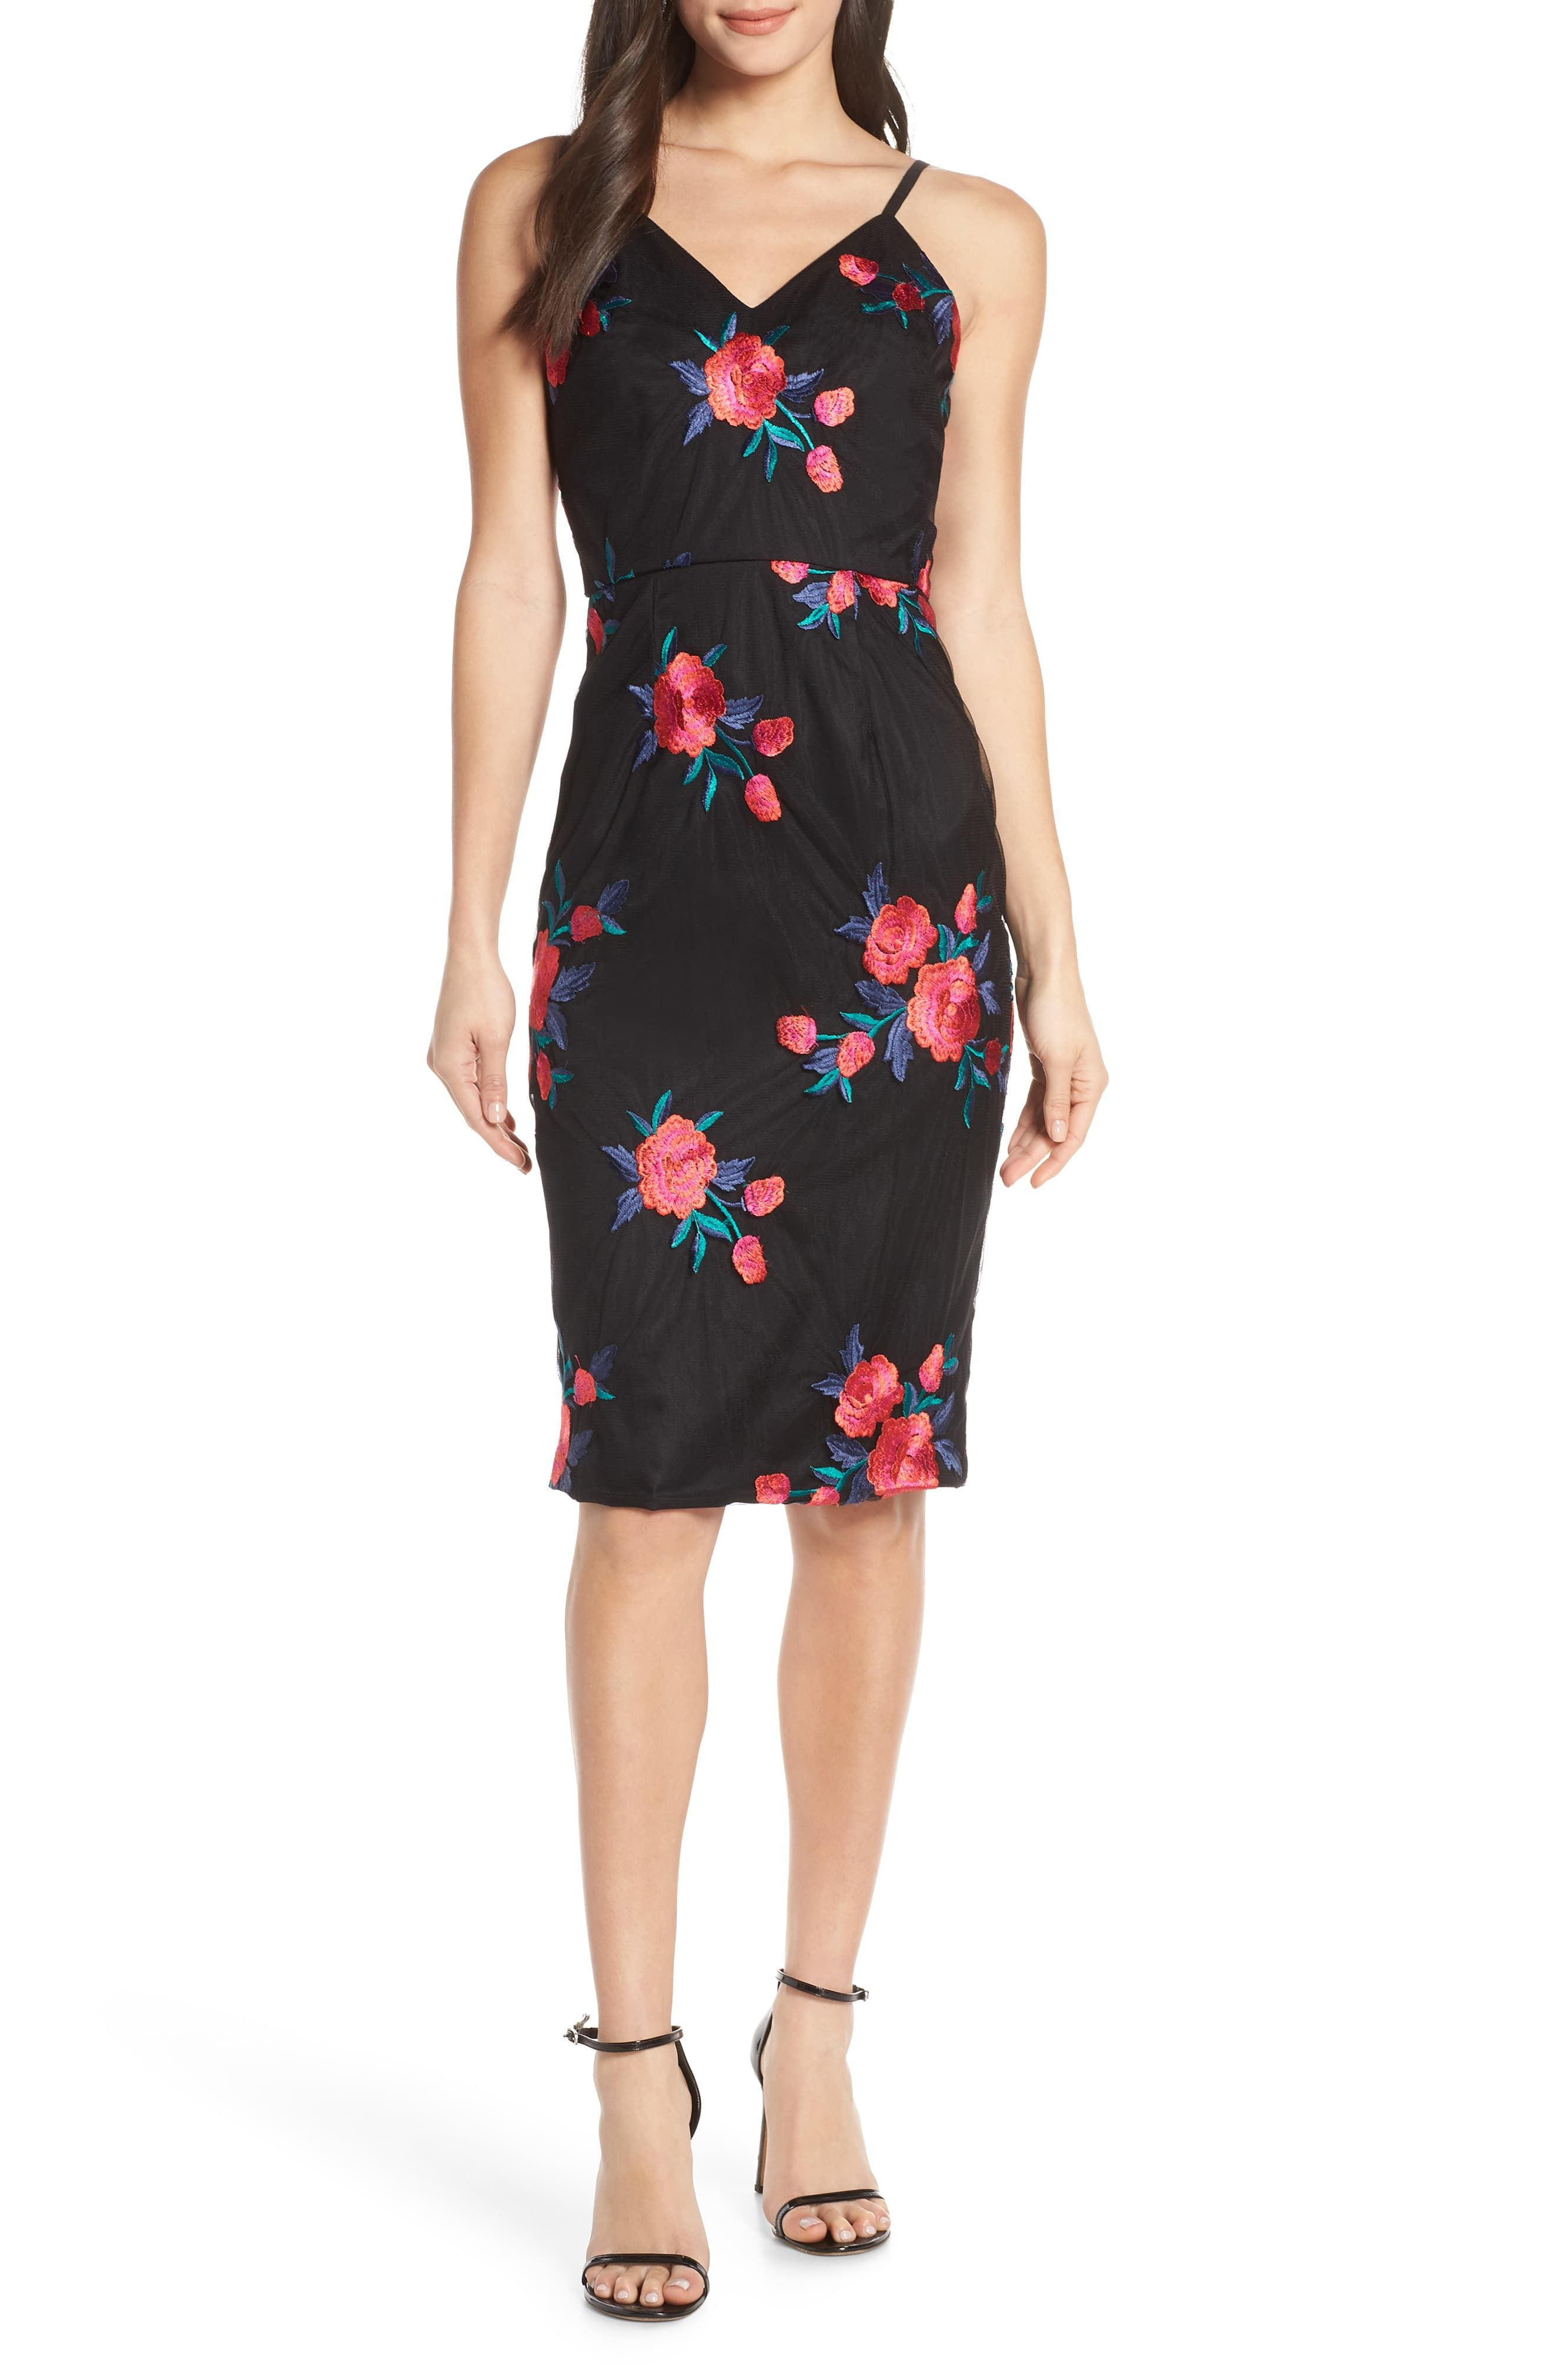 Chi Chi London Margaret Embroidered Mesh Cocktail Dress Nordstrom In 2021 Trendy Cocktail Dresses Mesh Cocktail Dress Fashion Clothes Women [ 4048 x 2640 Pixel ]